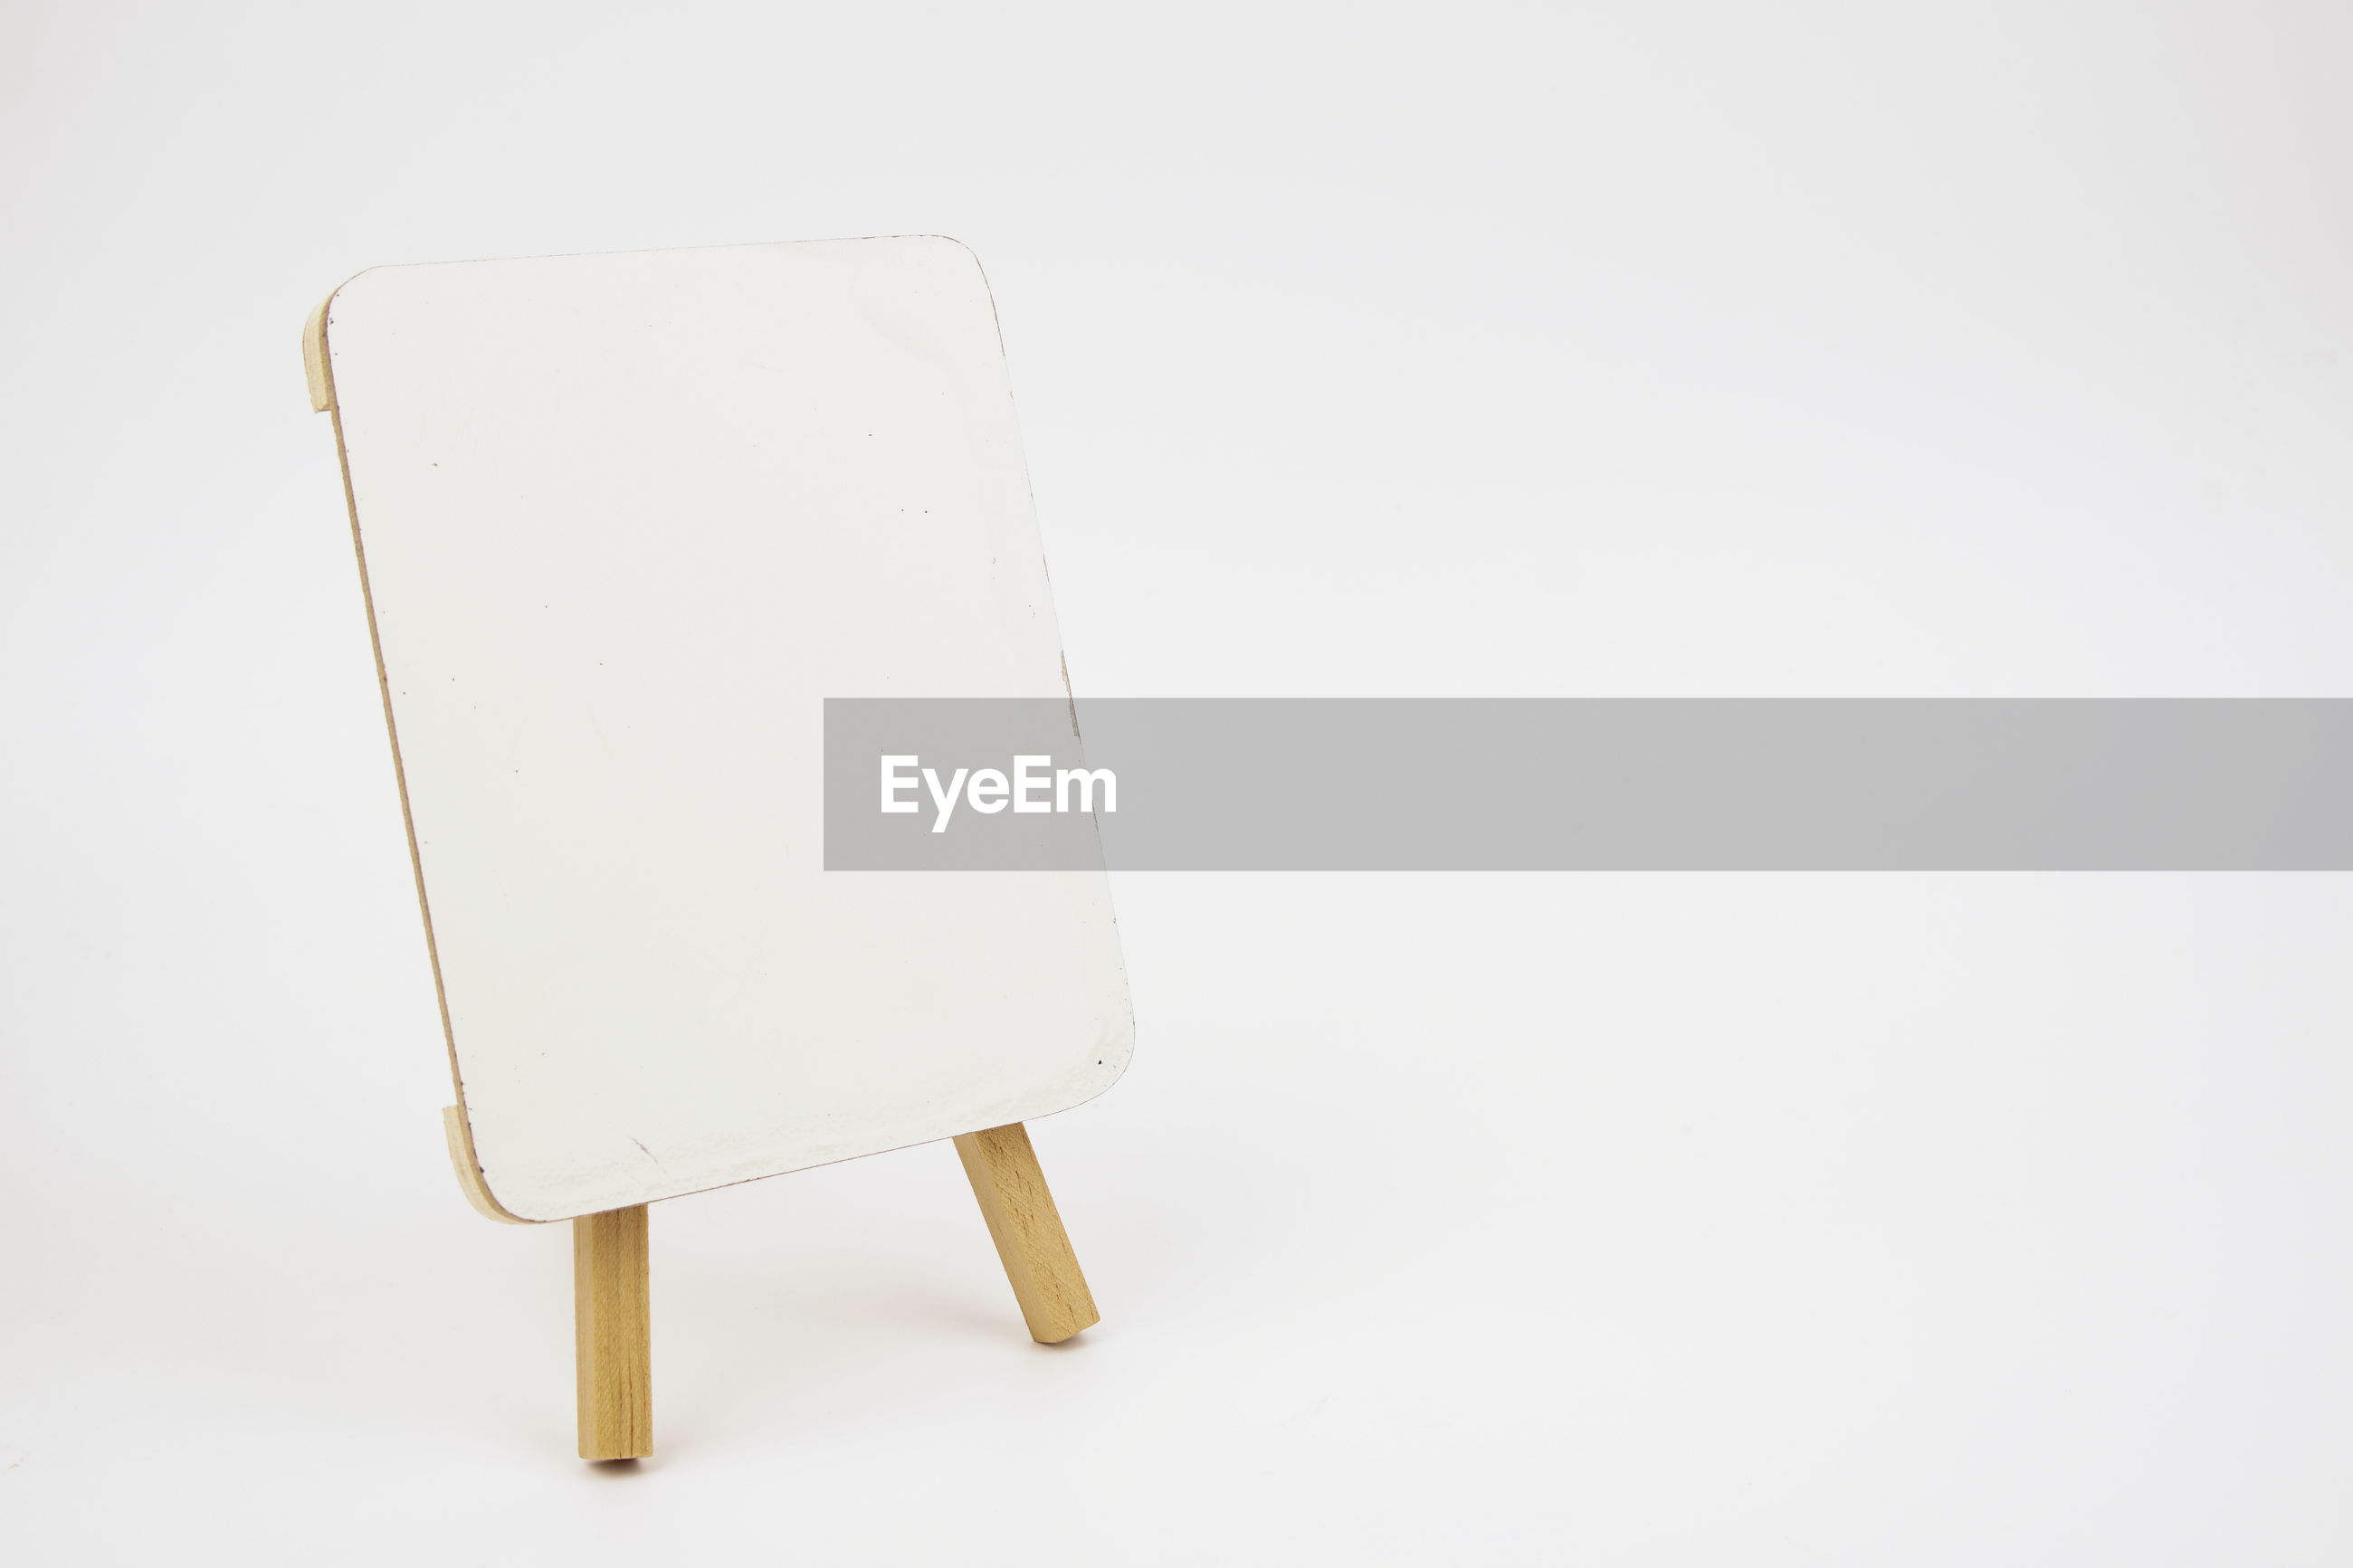 Close-up of easel against white background